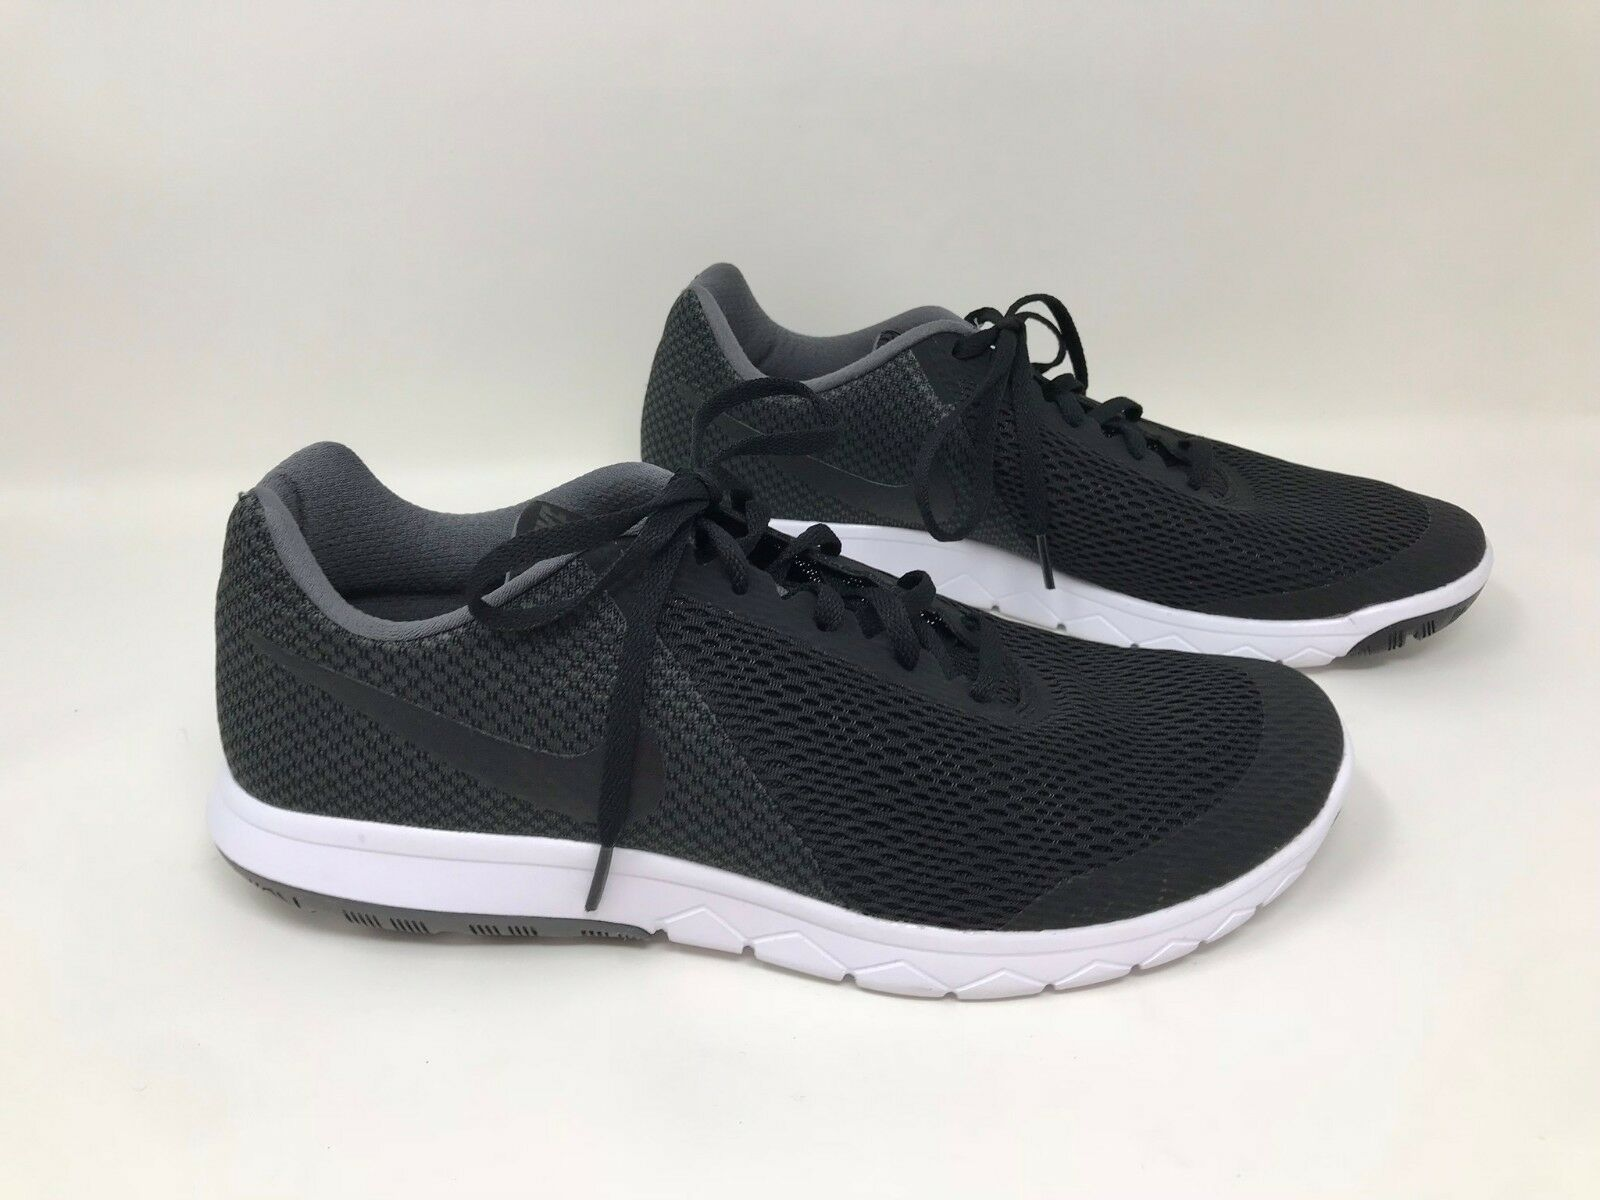 Great discount New! Men's Nike 881802-001 Flex Experience 6 Running Shoes - Black/Charcoal R60